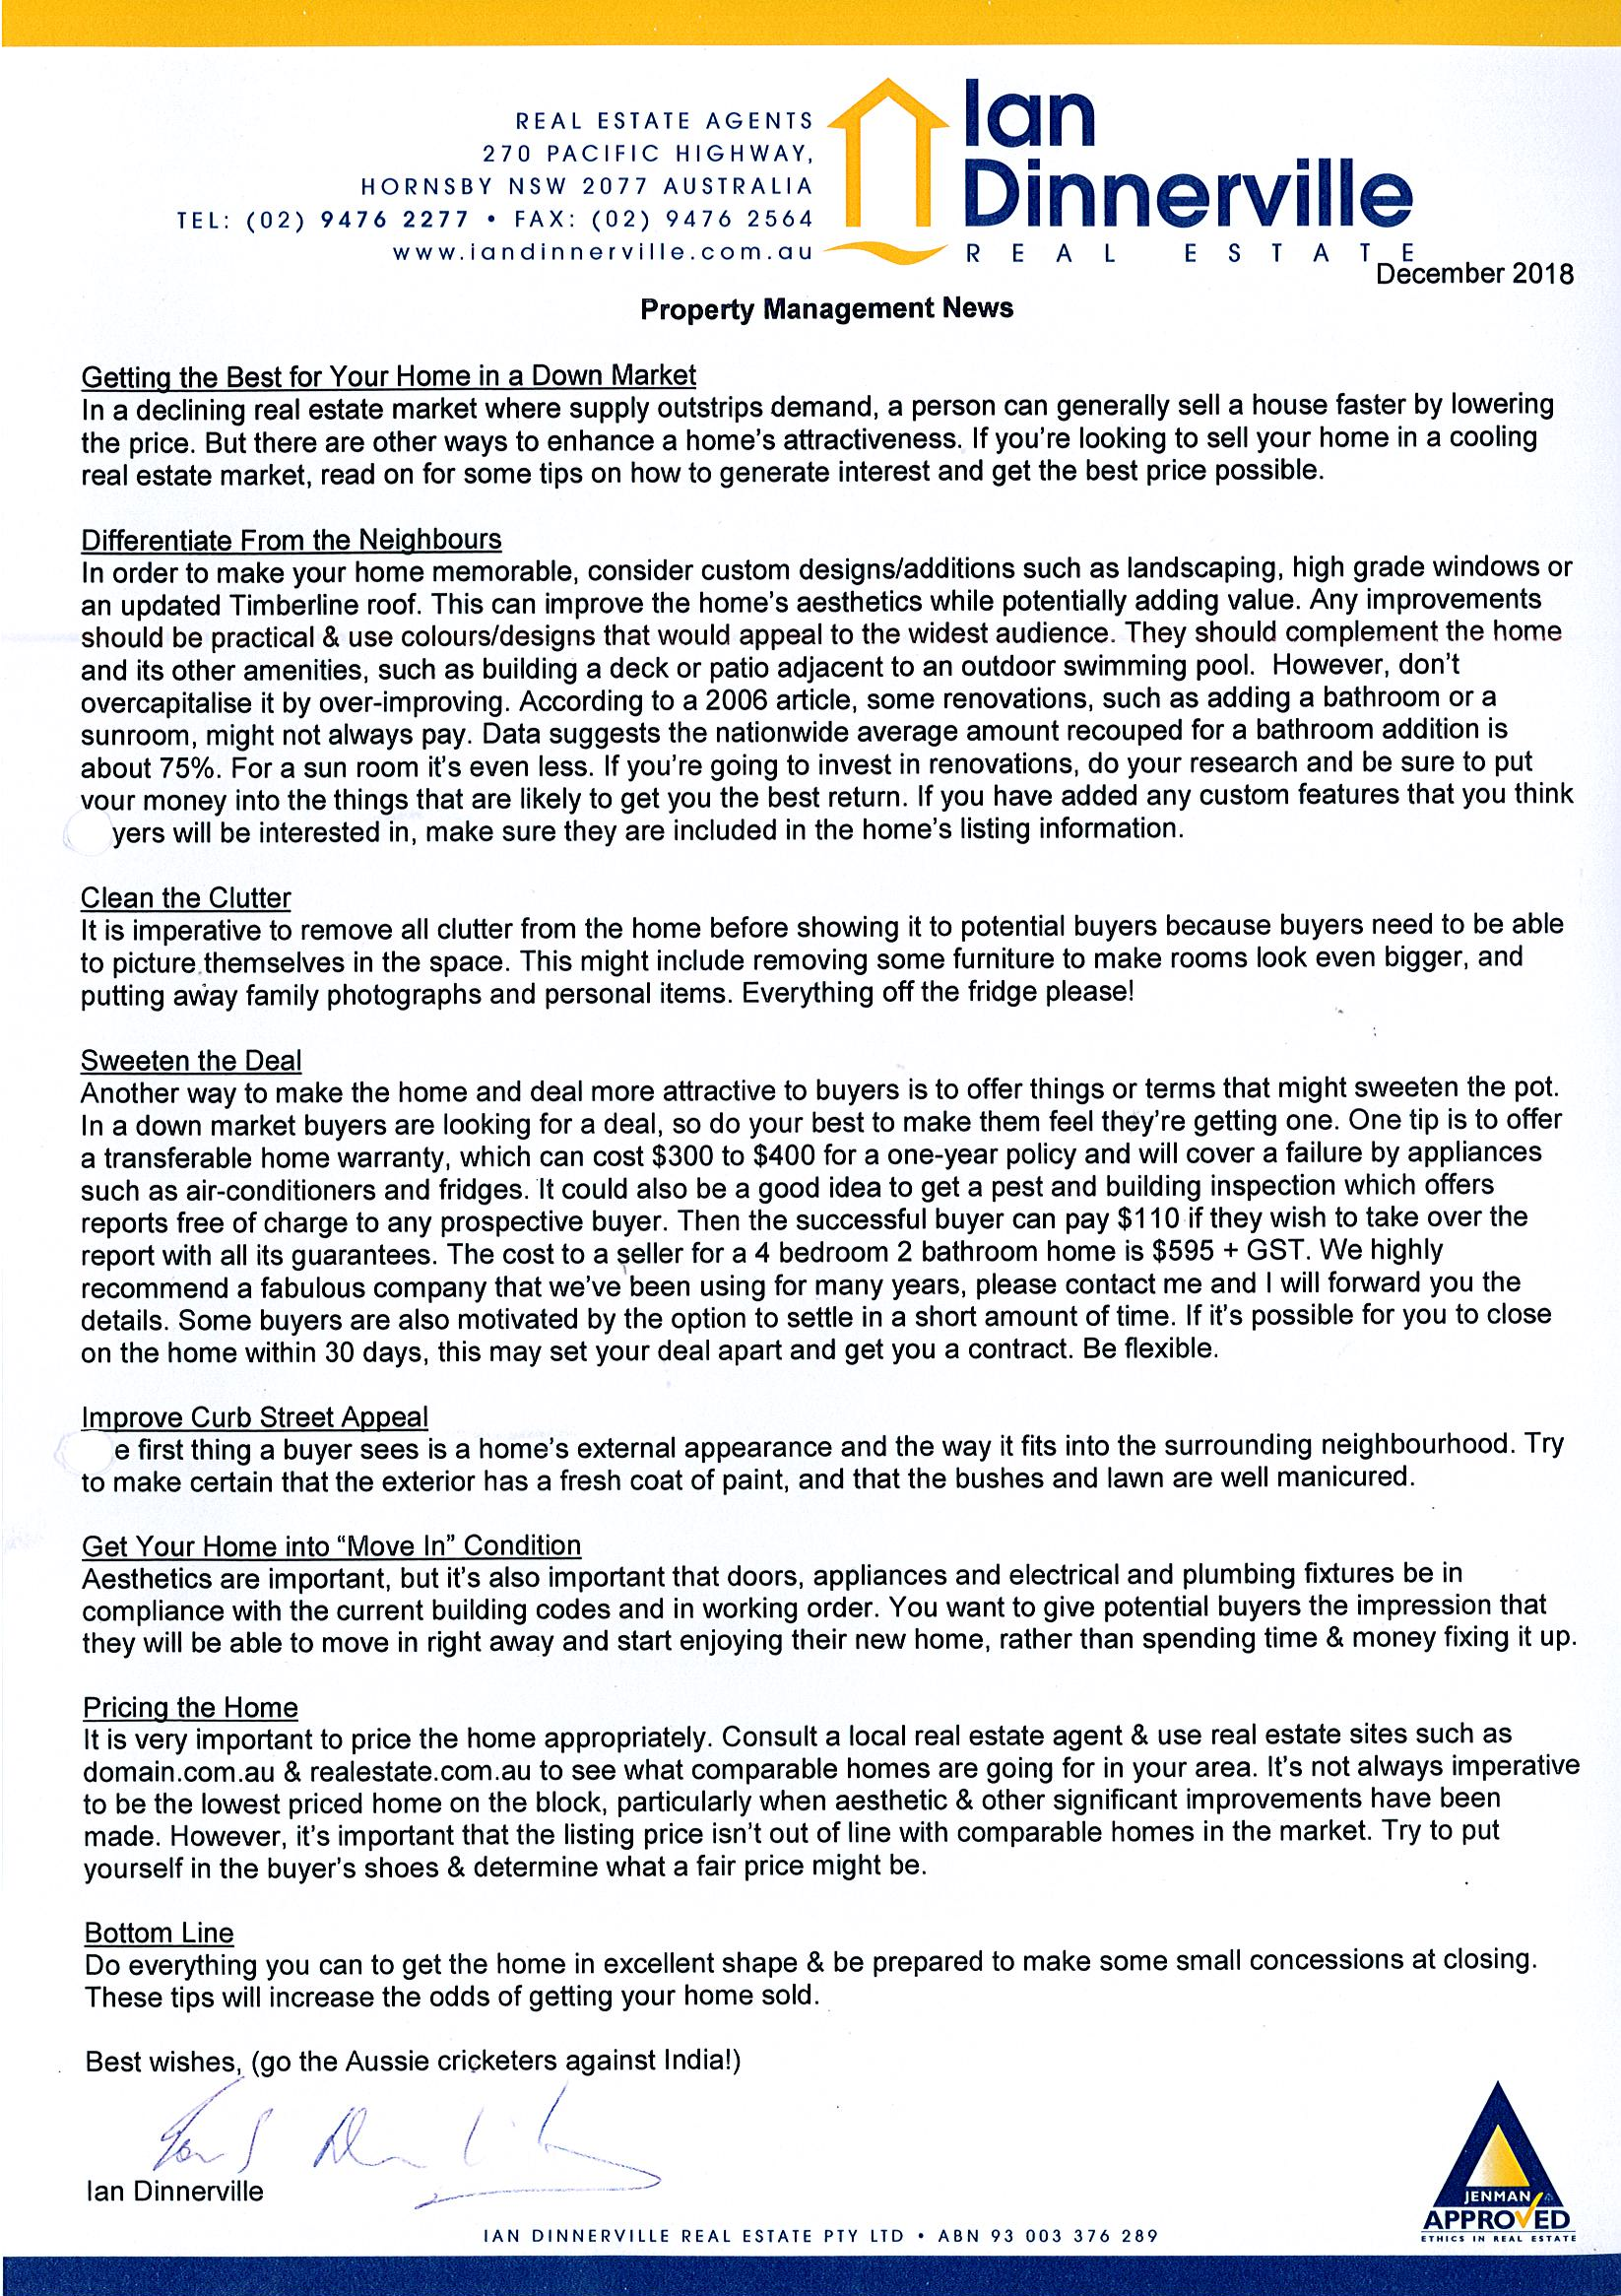 Ian Dinnerville Real Estate - Real Estate Newsletters